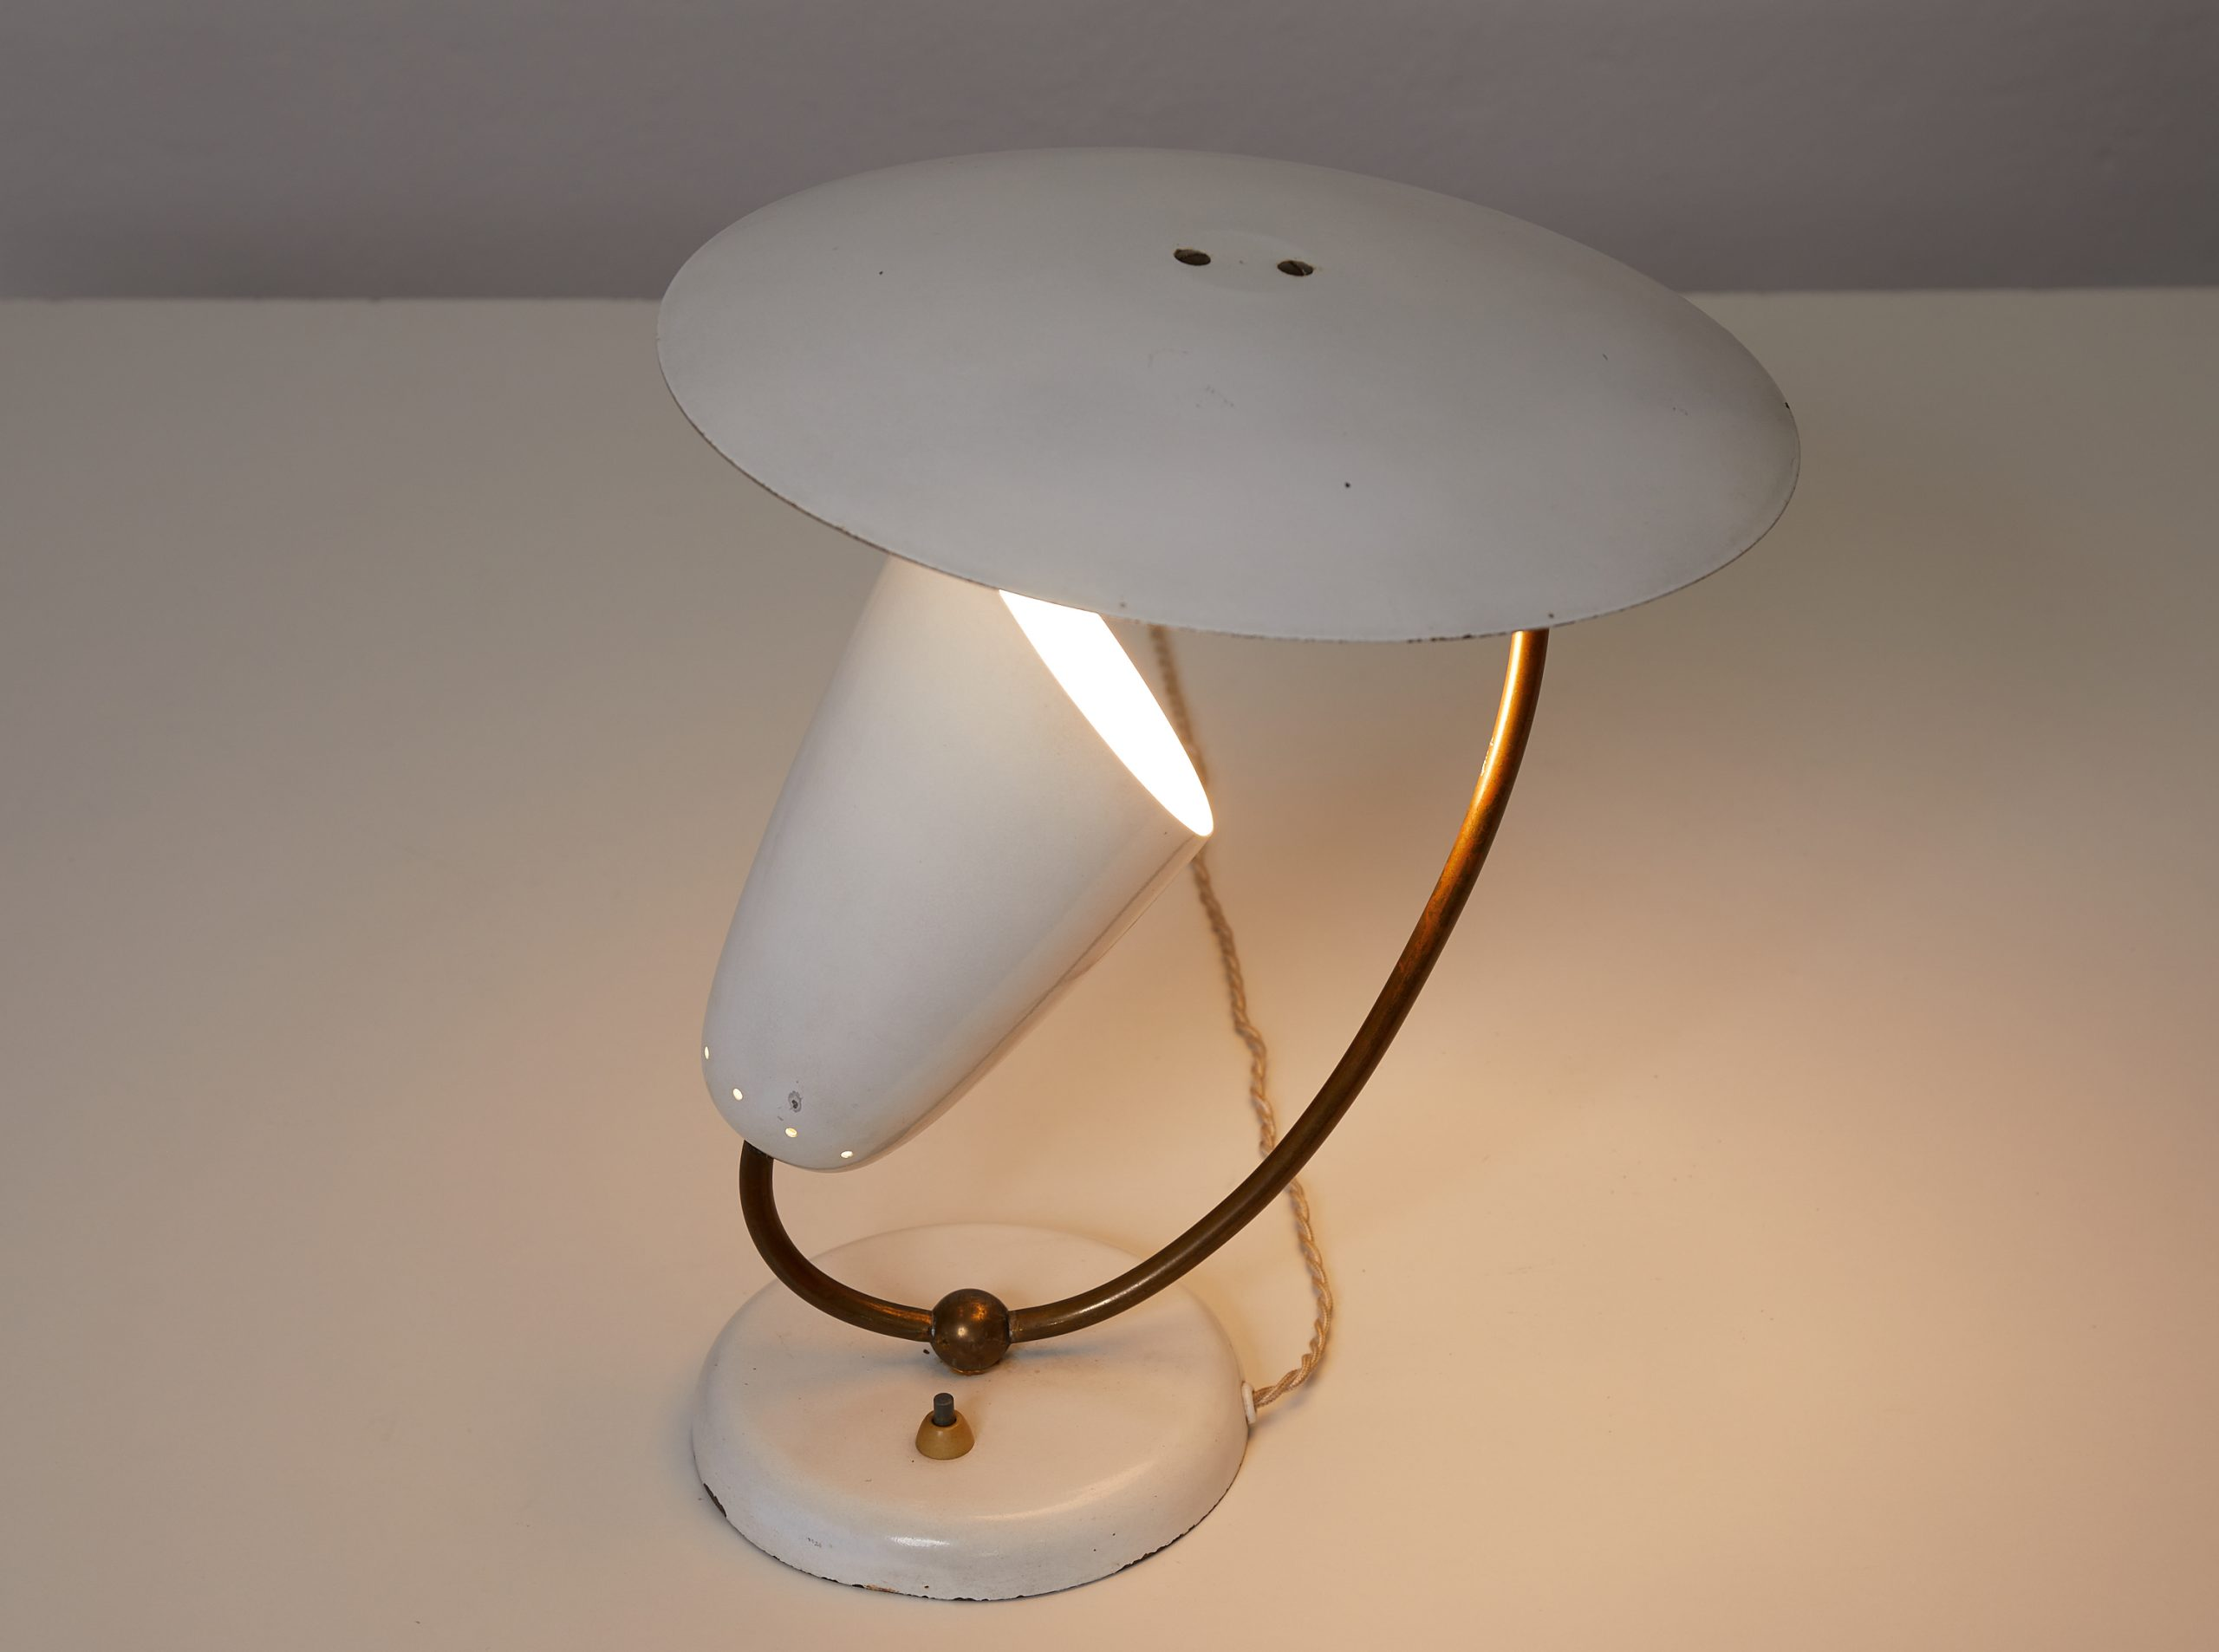 brass-and-enameled-metal-table-lamp-switzerland-1950-image-04